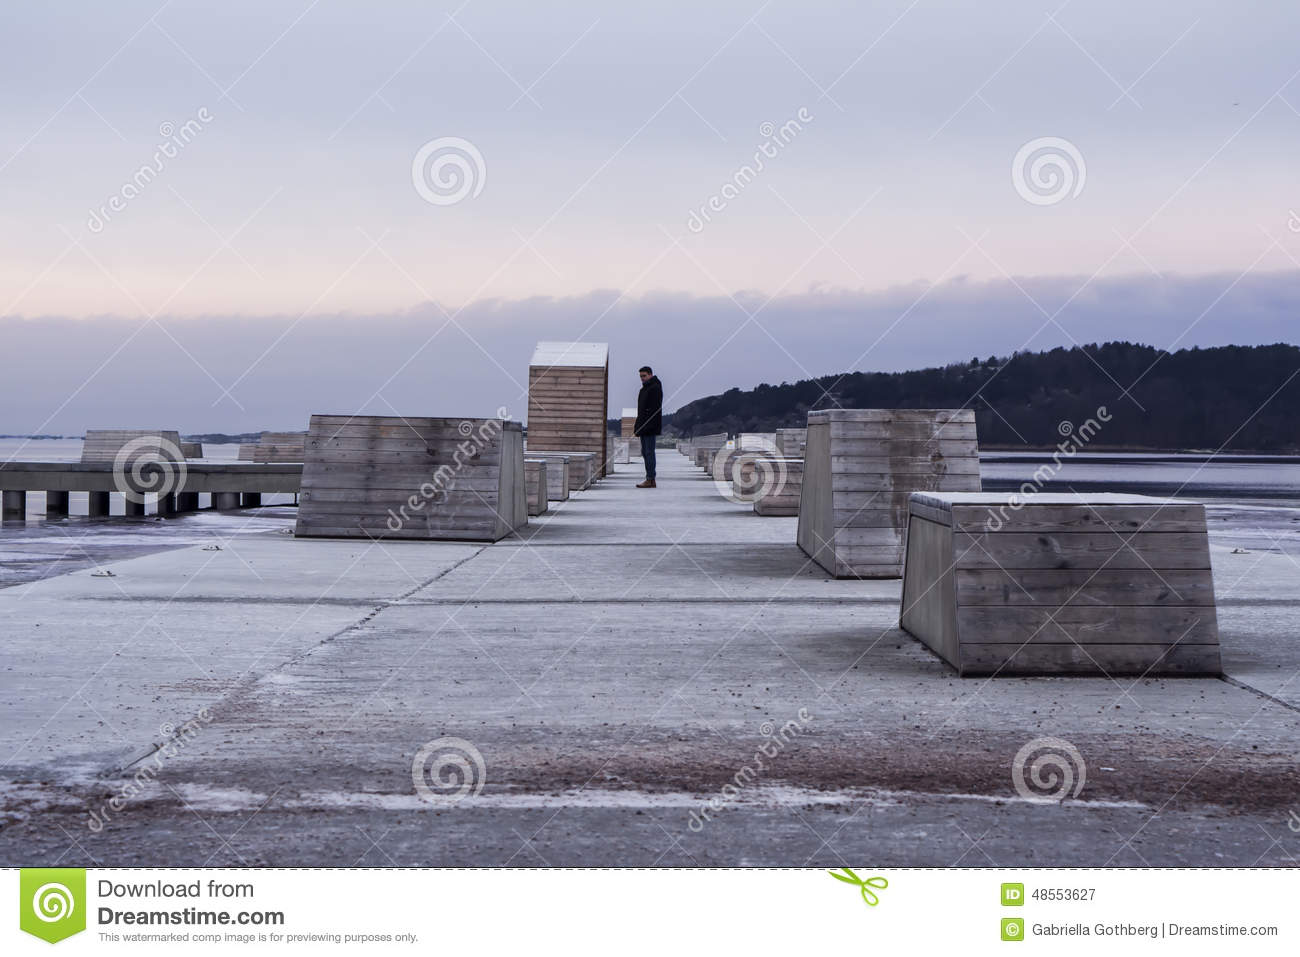 Deep perspective of a man on a pier in winter.